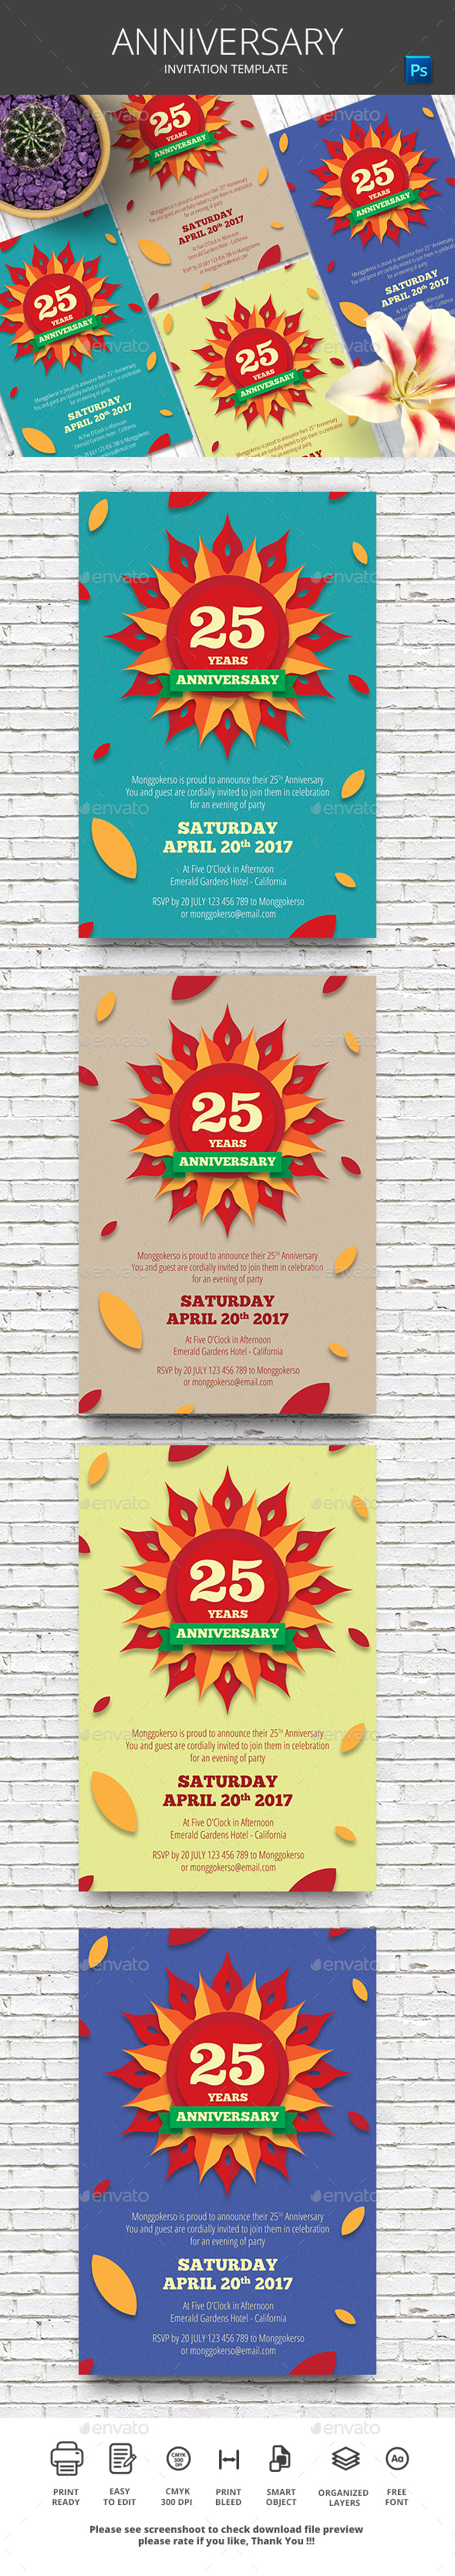 Anniversary Invitation - Cards & Invites Print Templates